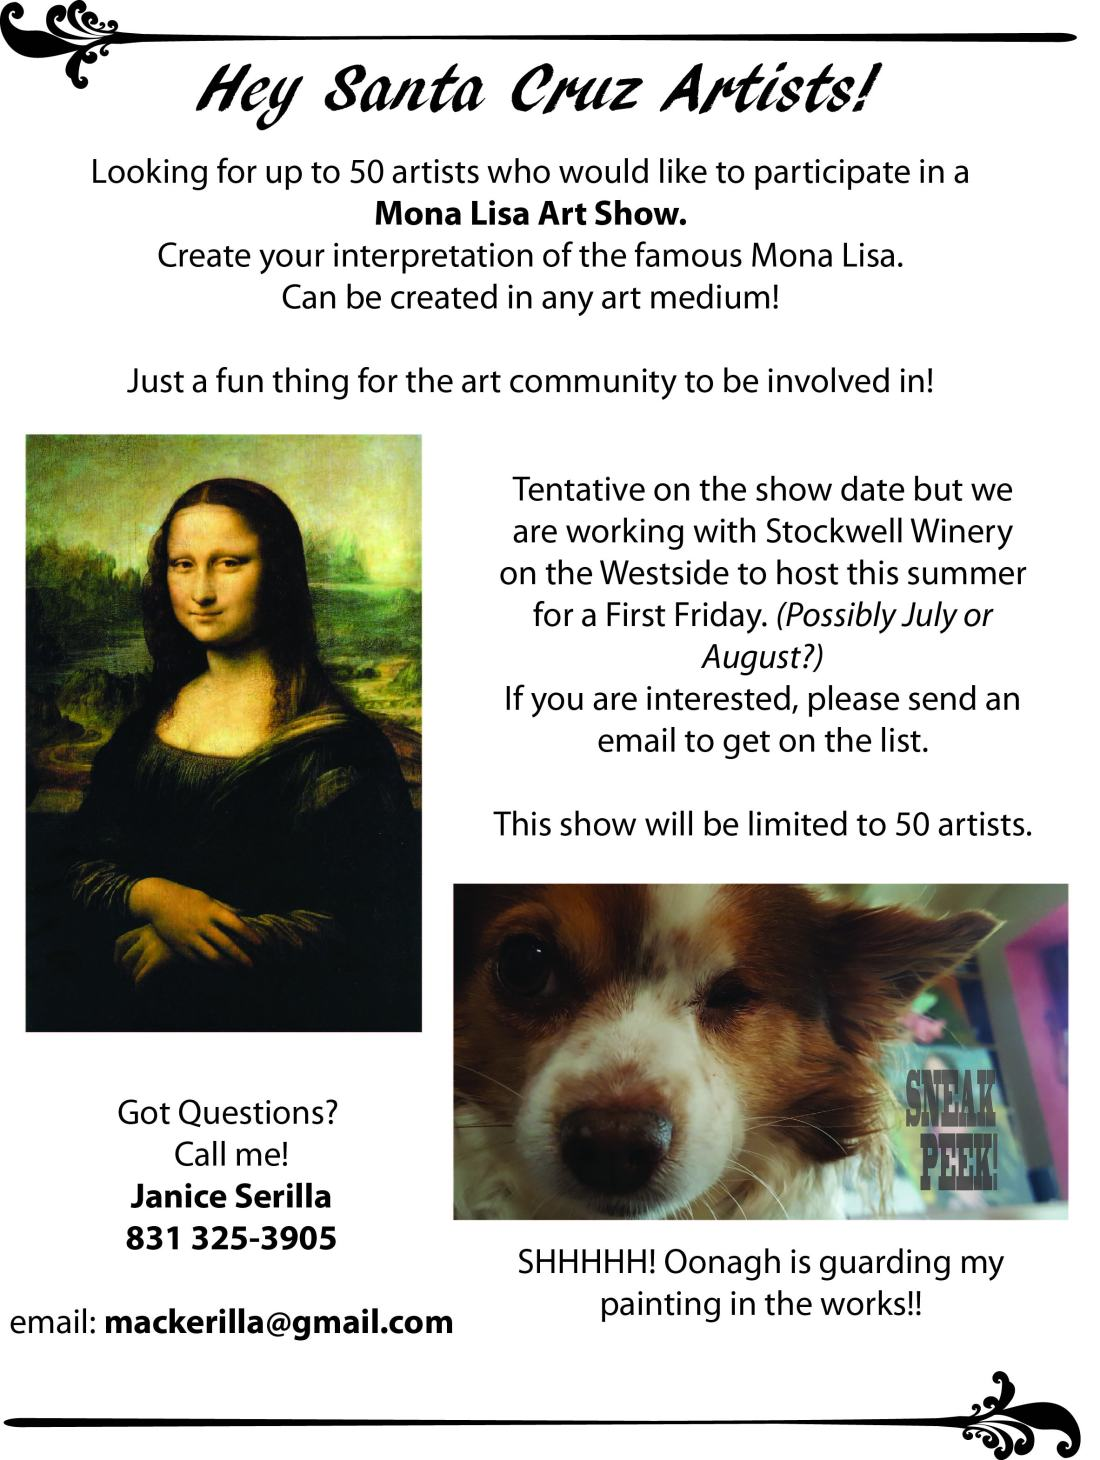 Mona lisa art show flyer